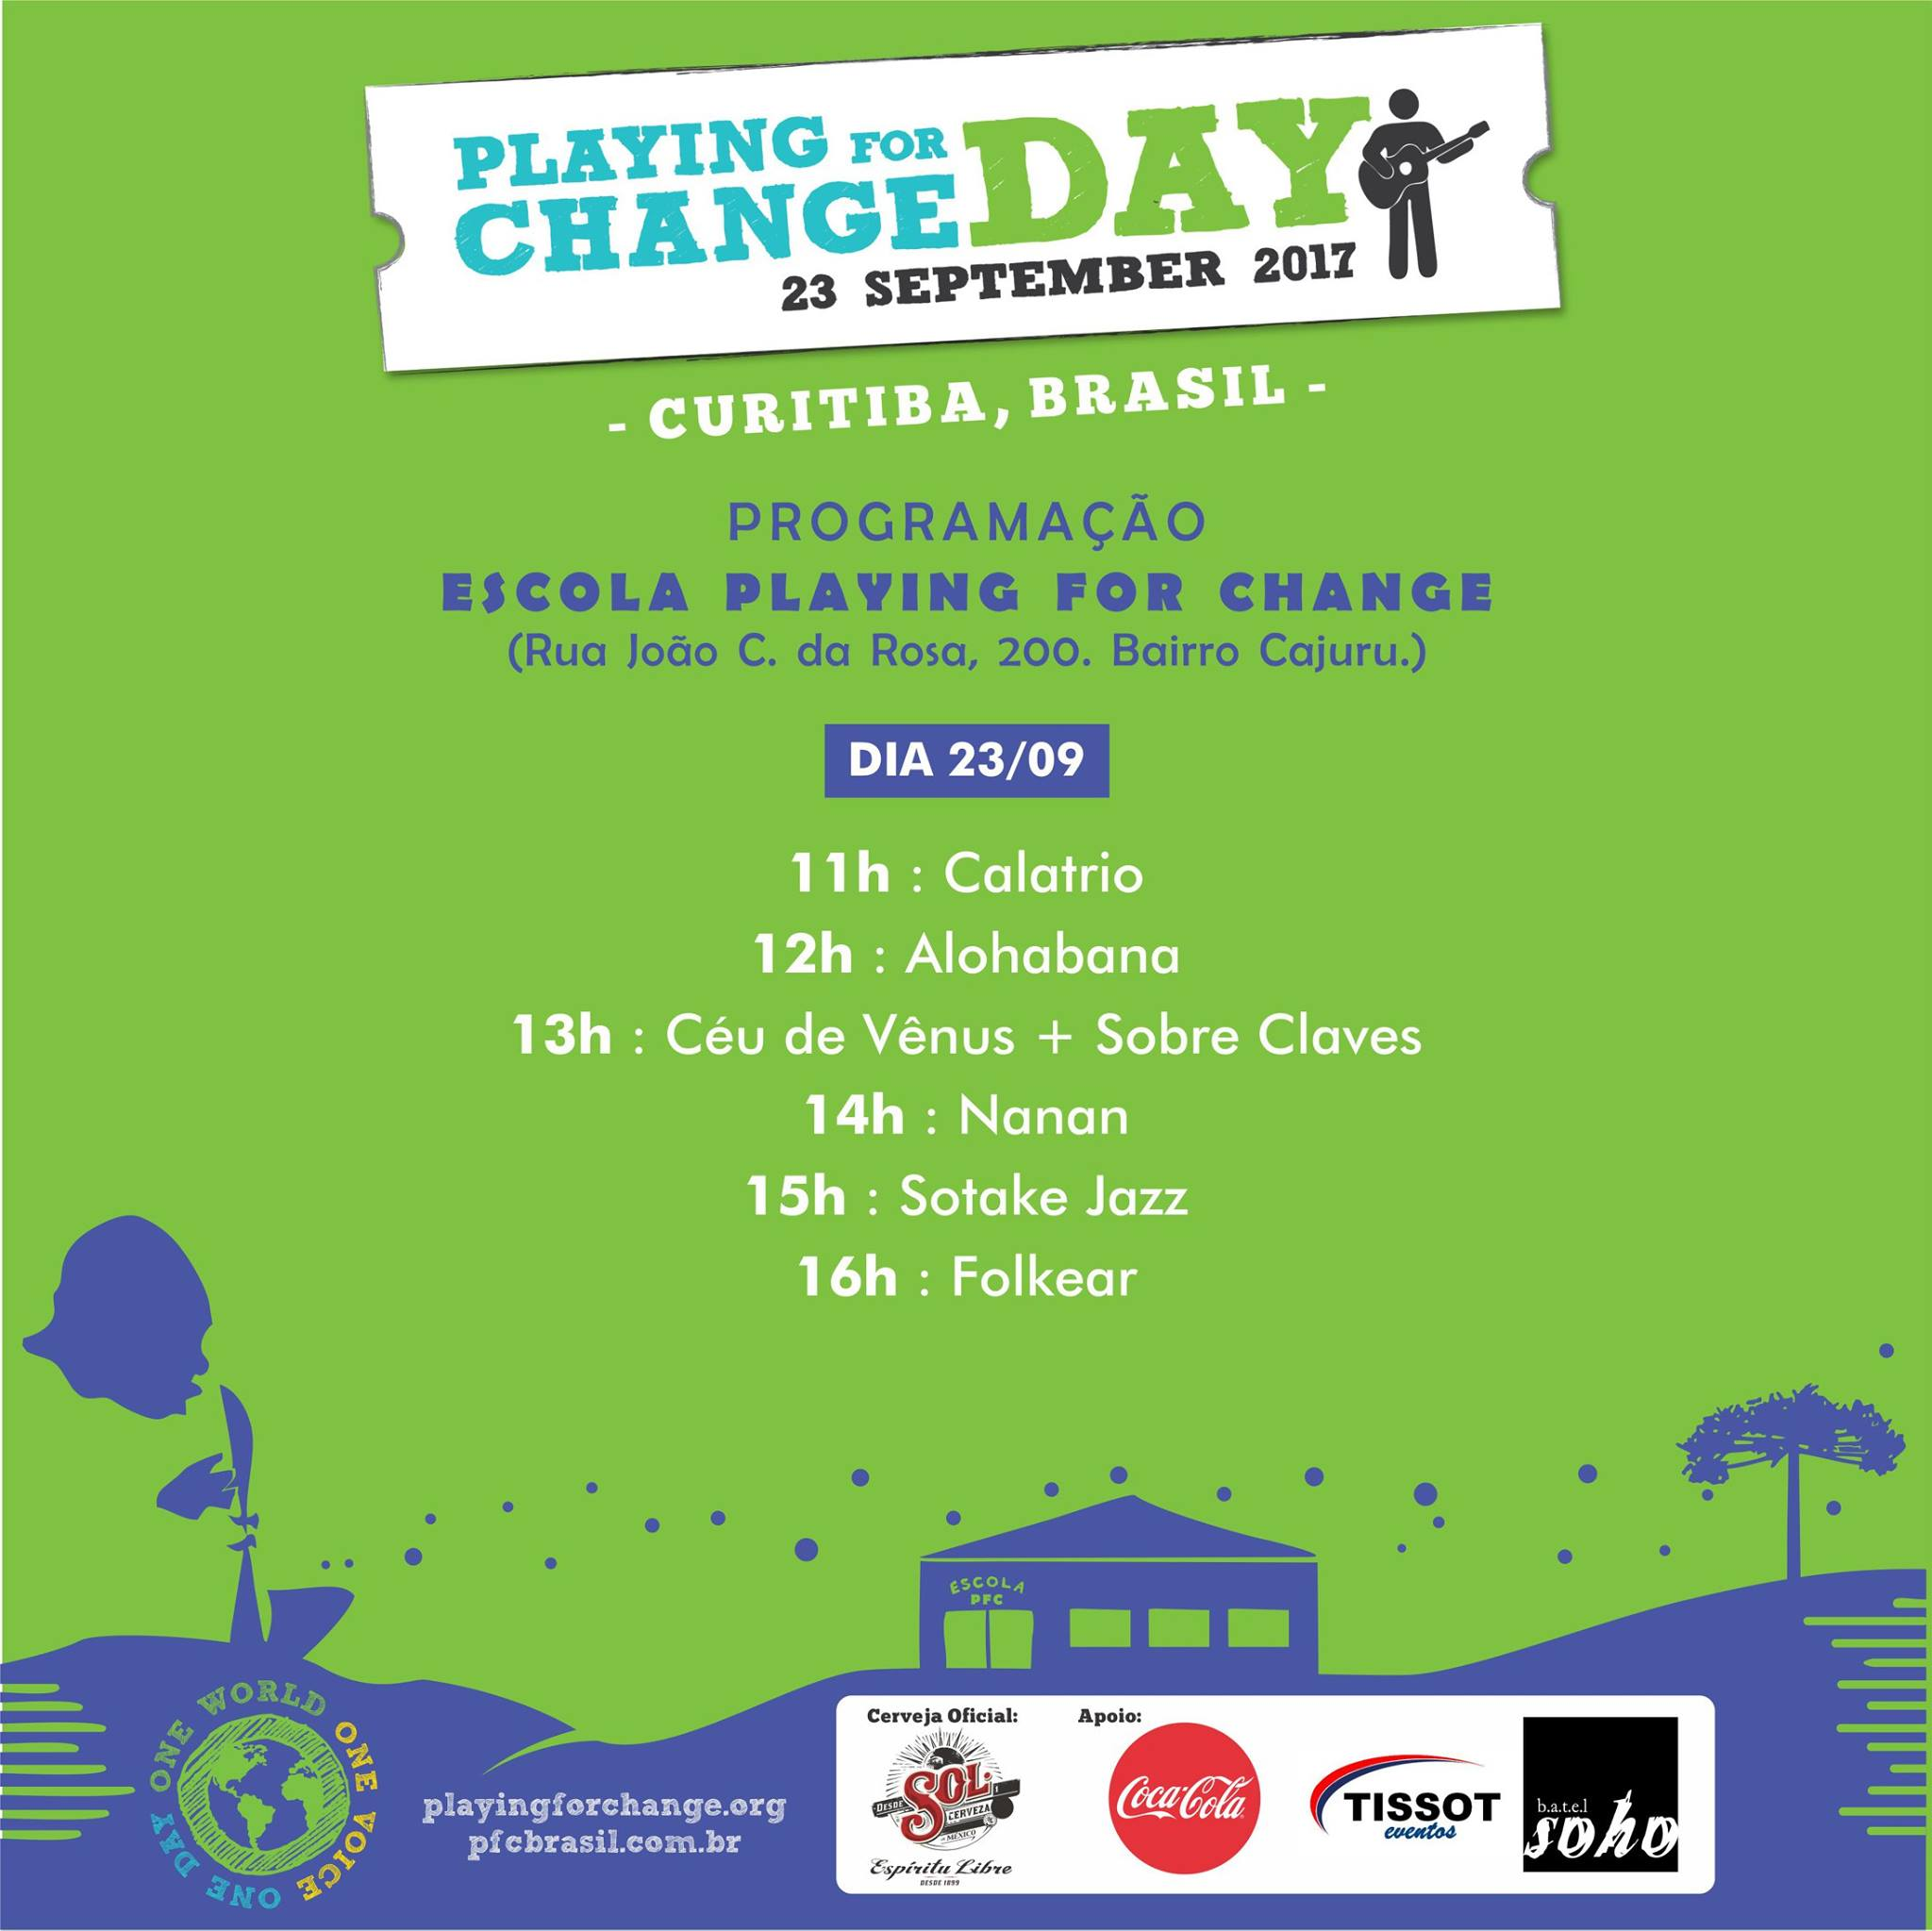 #GiveThanksDay - Playing For Change Day |Playing Change Day